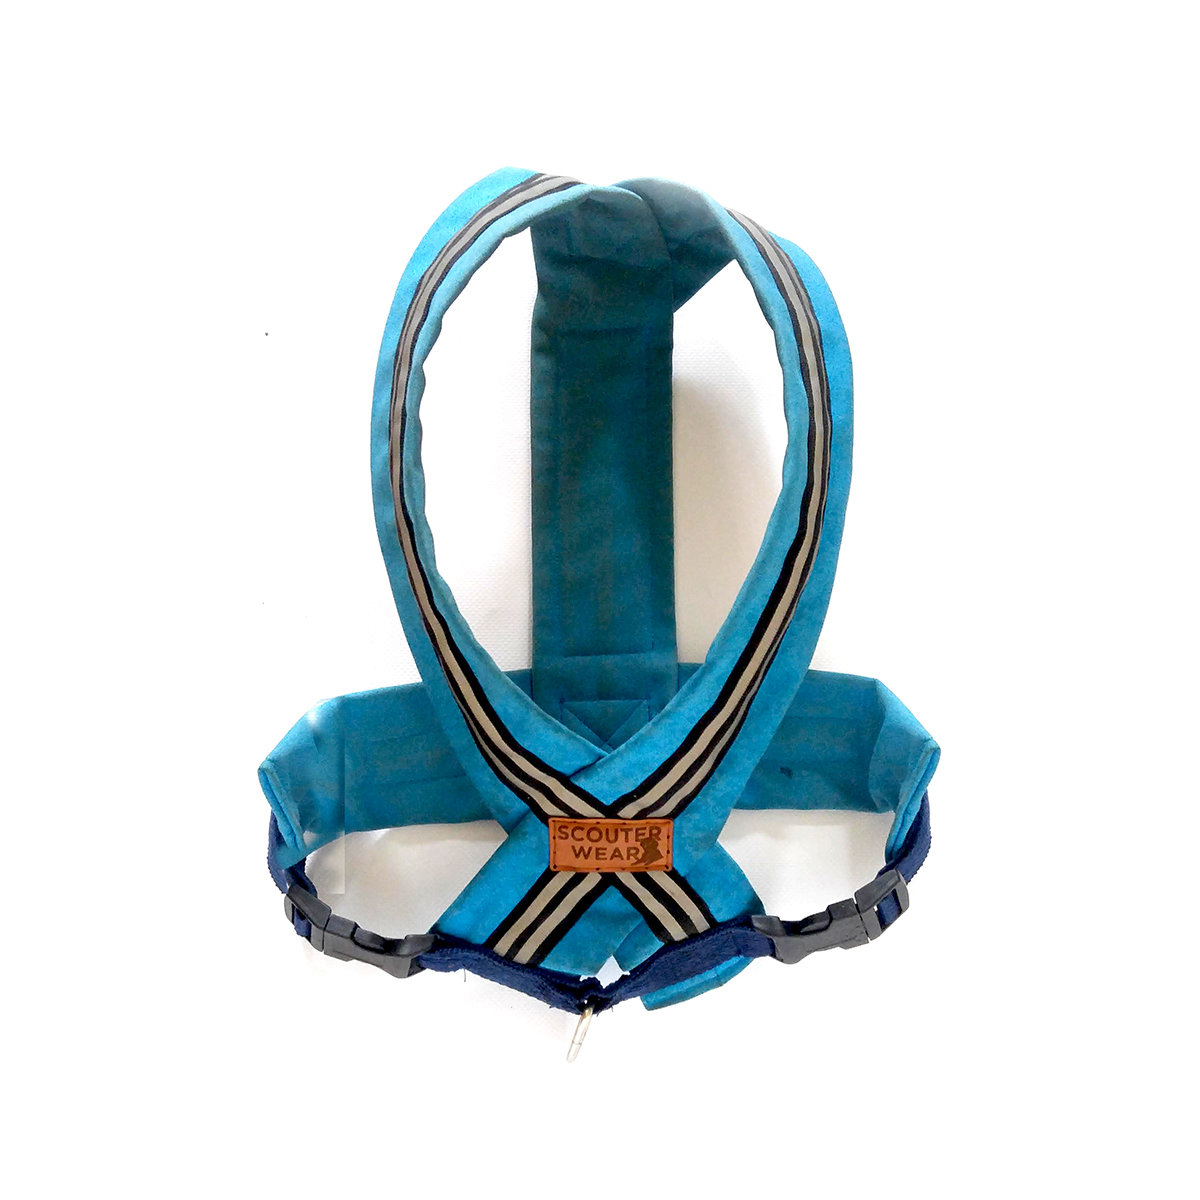 Harness Top View